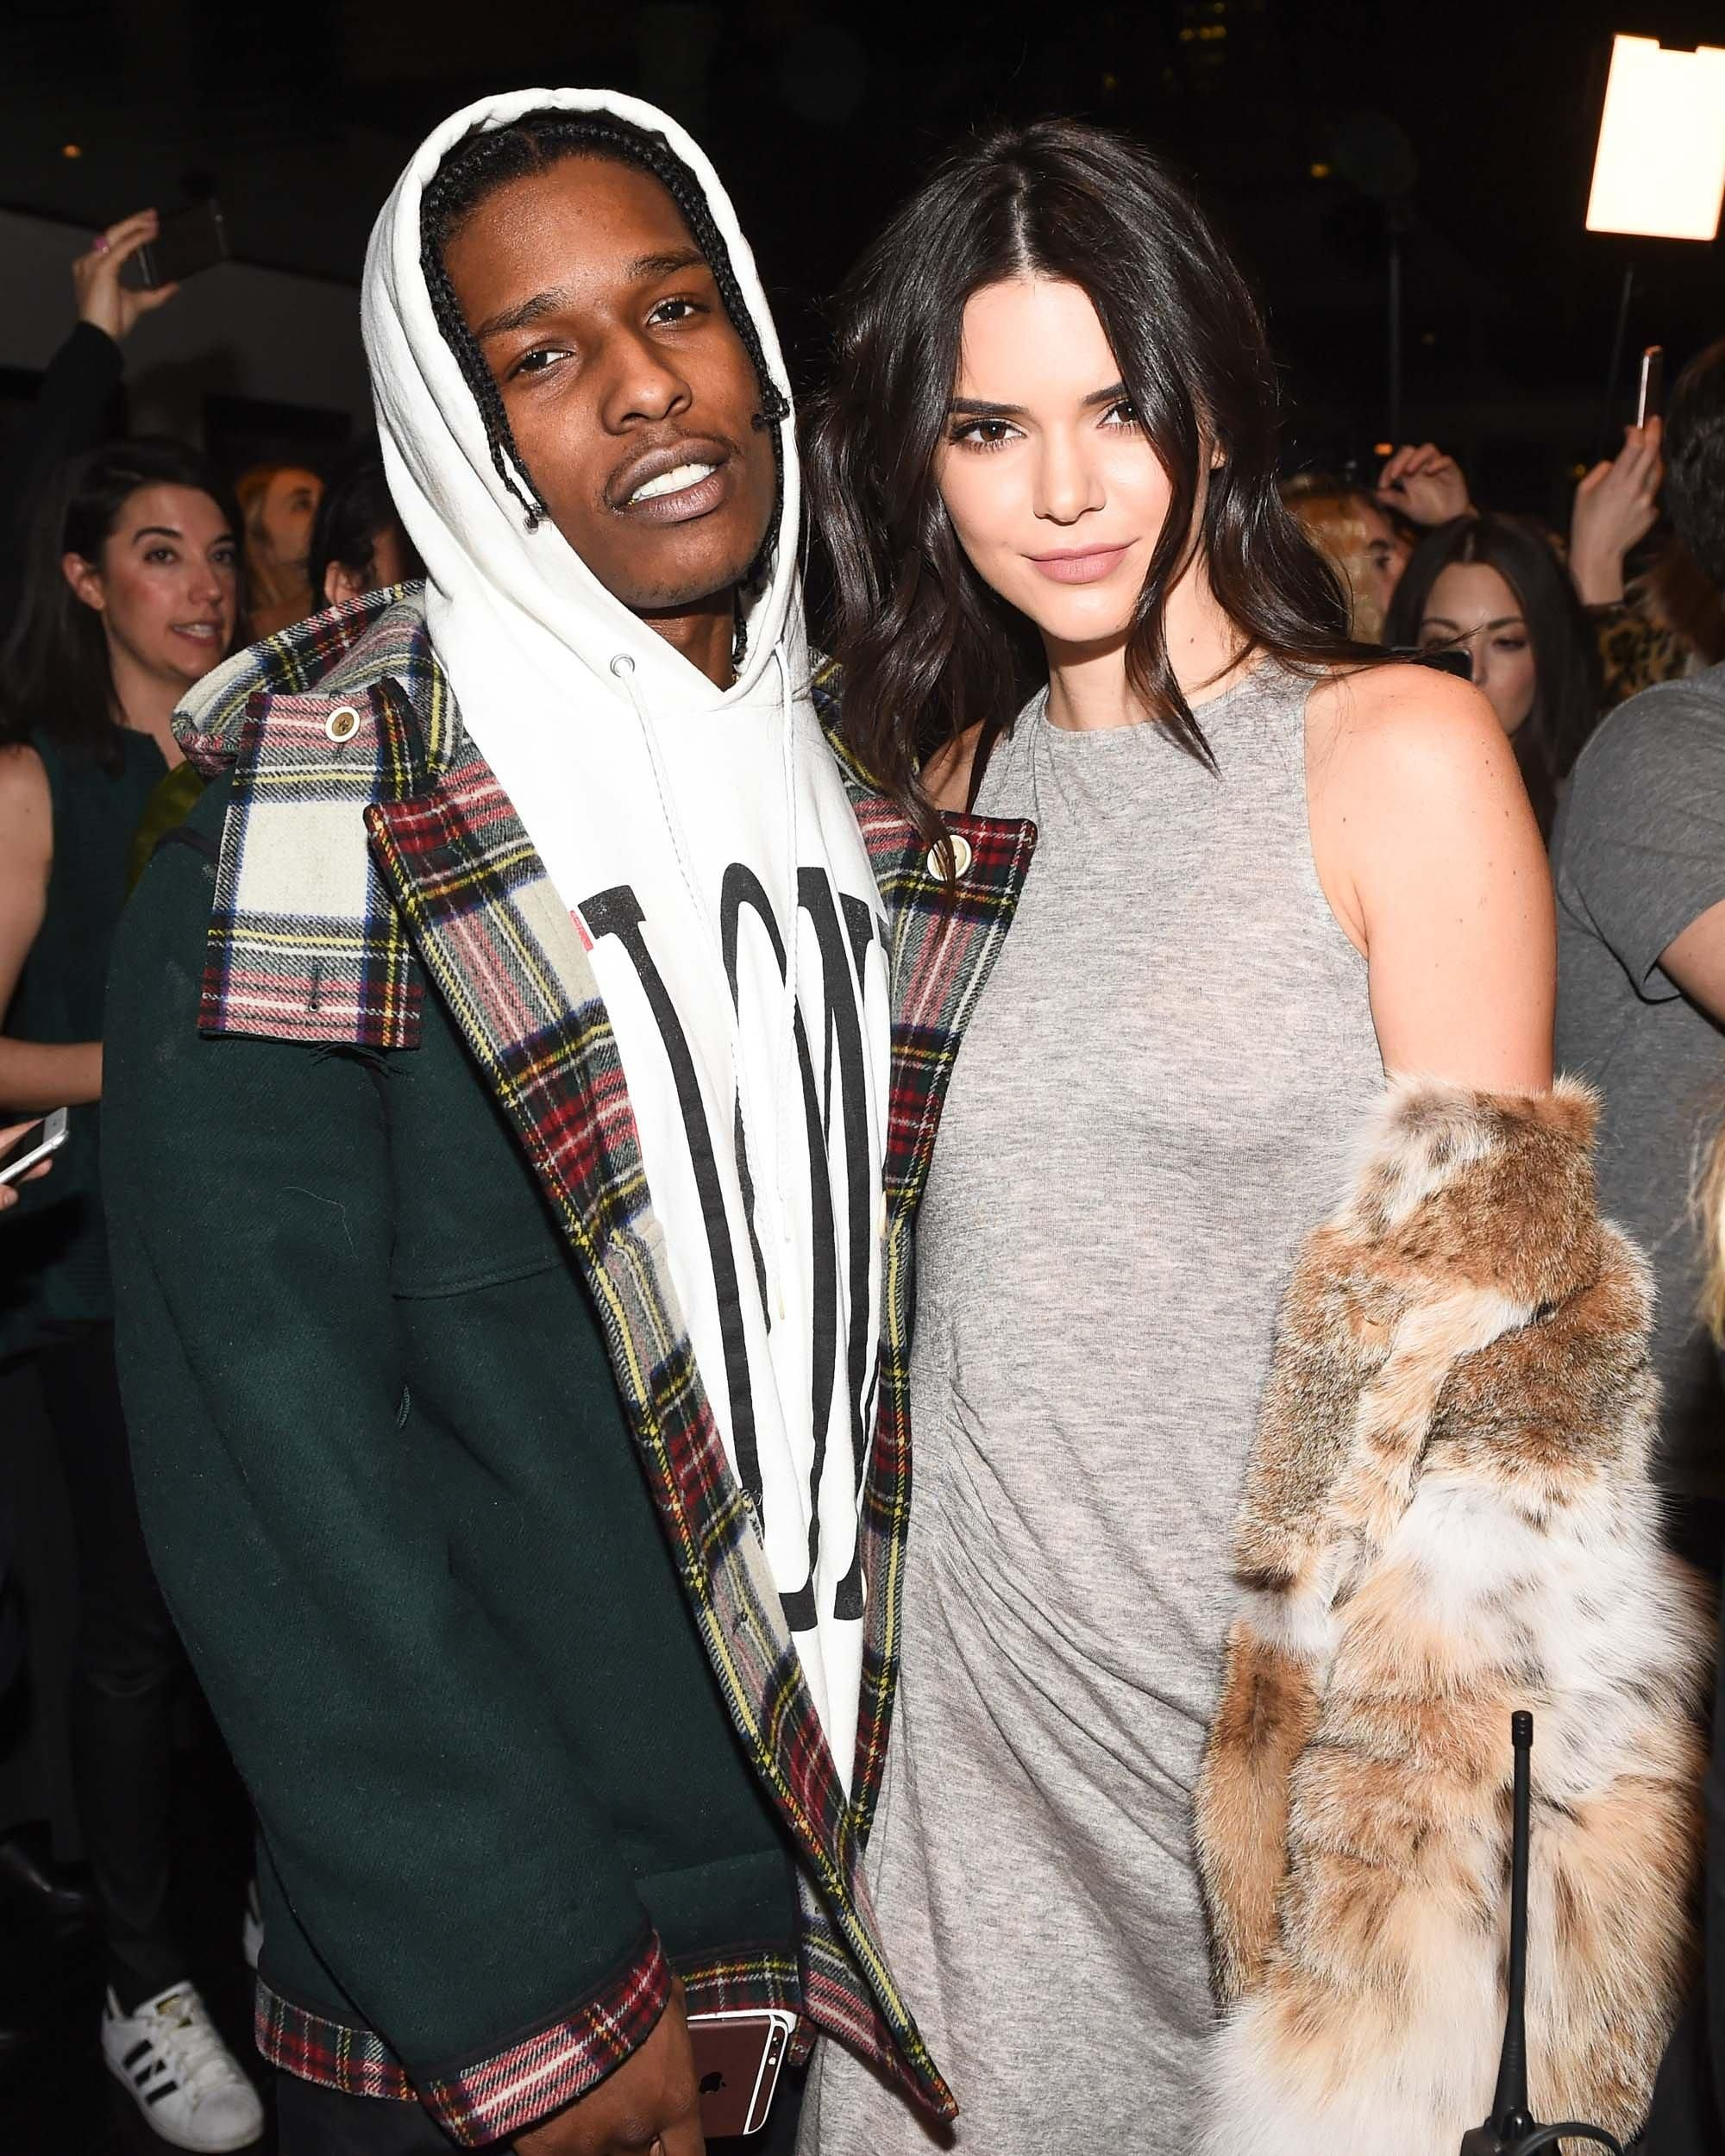 Aap rocky and kendall jenner parties pinterest launch party asap rocky and kendall jenner at the kendall kylie spring 2016 collection launch february kristyandbryce Images